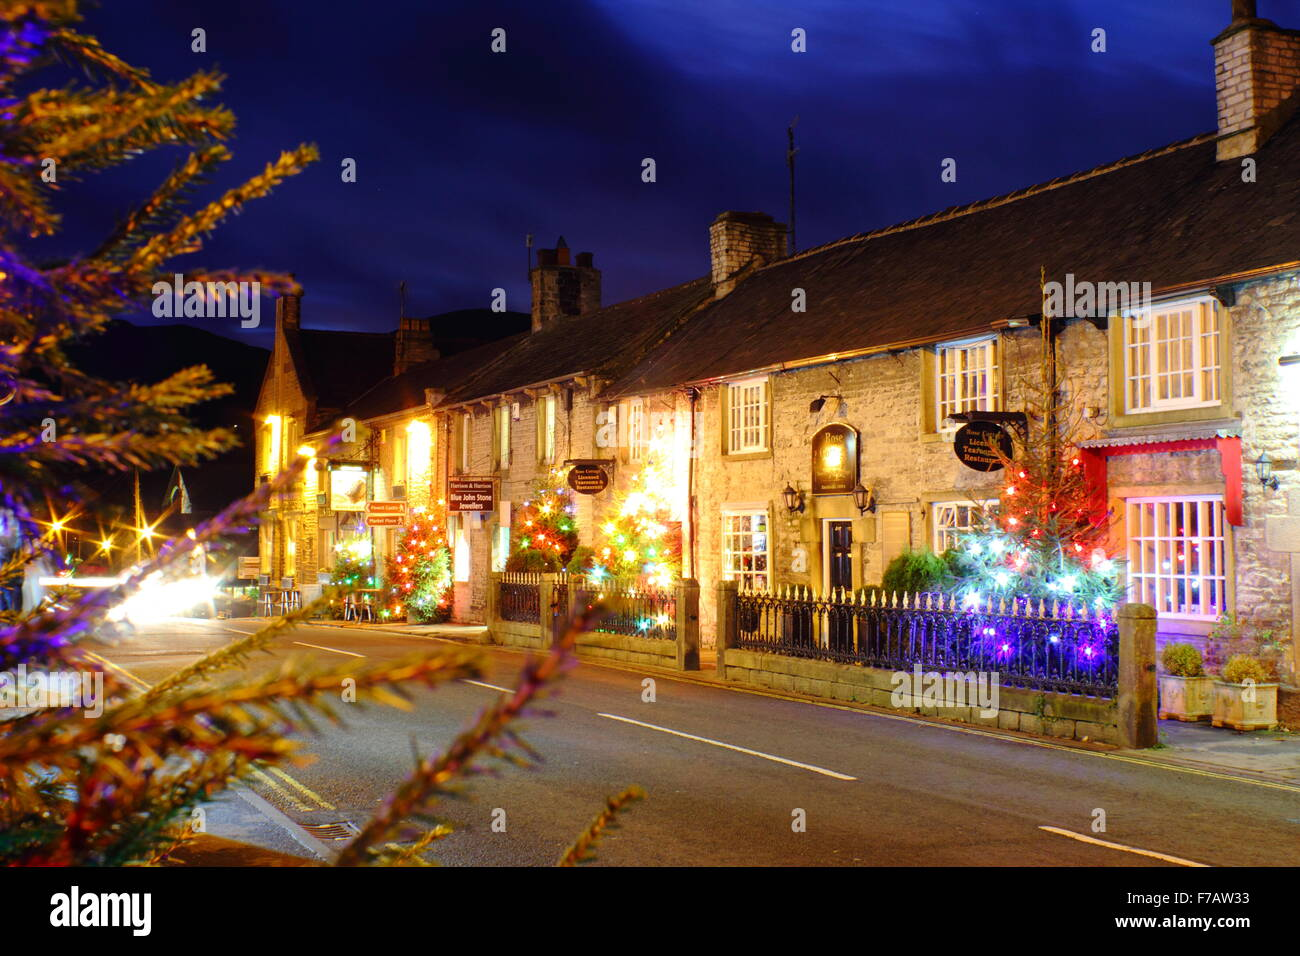 Decorated Christmas trees line the main street in Castleton; a traditional British village in the Peak District, - Stock Image